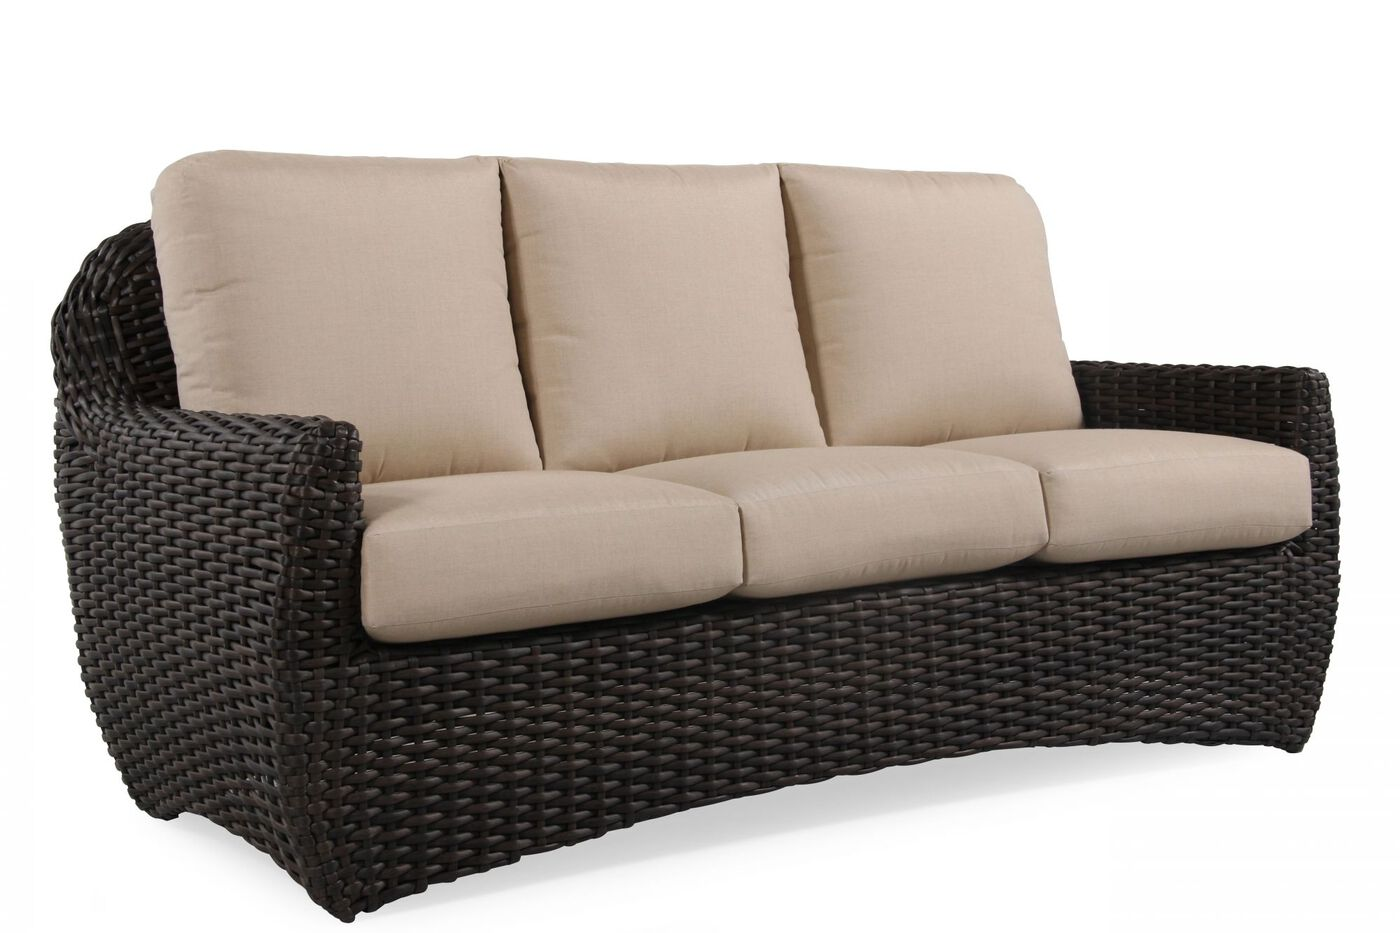 Agio hudson sofa mathis brothers furniture for Sofa hudson